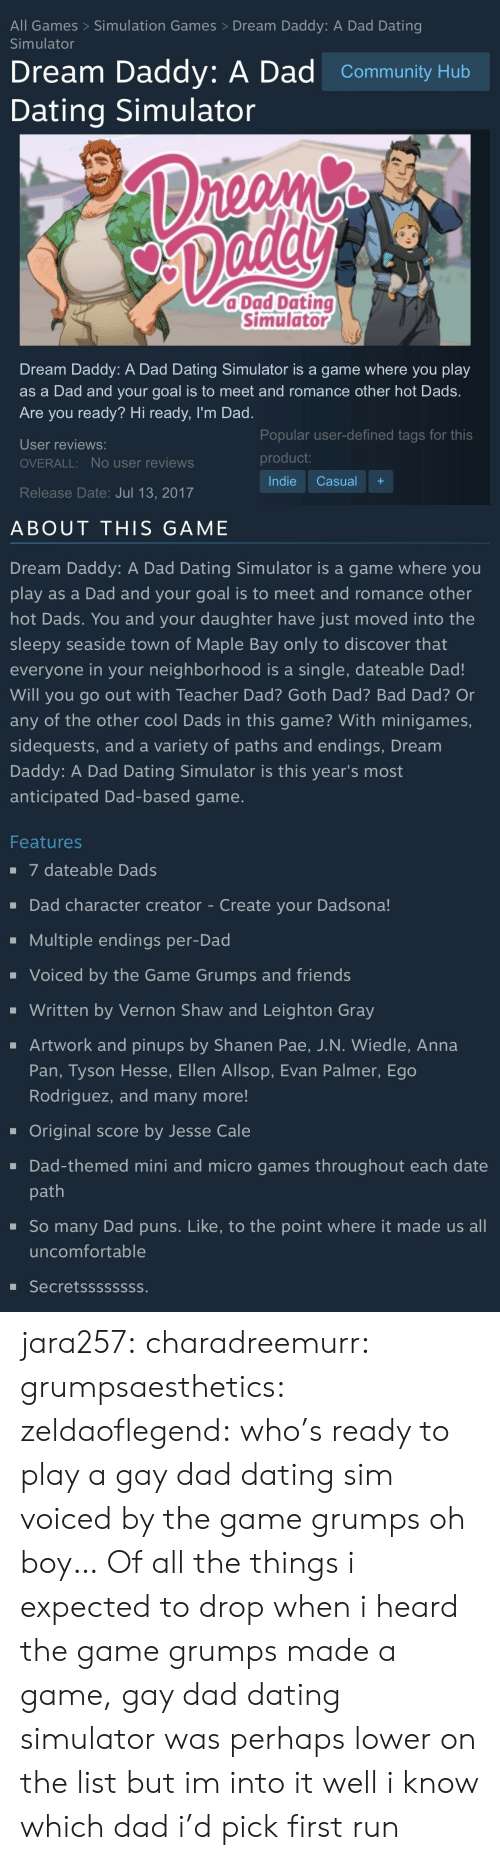 Anna, Bad, and Community: All Games> Simulation Games >Dream Daddy: A Dad Dating  Simulator  Dream Daddy: A Dad Community Hub  Dating Simulator  C0  a Dad Dating  Simulato  Dream Daddy: A Dad Dating Simulator is a game where you play  as a Dad and your goal is to meet and romance other hot Dads.  Are you ready? Hi ready, I'm Dad  User reviews:  OVERALL: No user reviews  Release Date: Jul 13, 2017  Popular user-defined tags for this  product  Indie Casual+   ABOUT THIS GAME  Dream Daddy: A Dad Dating Simulator is a game where you  play as a Dad and your goal is to meet and romance other  hot Dads. You and your daughter have just moved into the  sleepy seaside town of Maple Bay only to discover that  everyone in your neighborhood is a single, dateable Dad!  Will you go out with Teacher Dad? Goth Dad? Bad Dad? Or  any of the other cool Dads in this game? With minigames,  sidequests, and a variety of paths and endings, Dream  Daddy: A Dad Dating Simulator is this year's most  anticipated Dad-based game   Features  7 dateable Dads  -Dad character creator - Create your Dadsona!  Multiple endings per-Dad  Voiced by the Game Grumps and friends  Written by Vernon Shaw and Leighton Gray  Artwork and pinups by Shanen Pae, J.N. Wiedle, Anna  Pan, Tyson Hesse, Ellen Allsop, Evan Palmer, Ego  Rodriguez, and many more!  Original score by Jesse Cale  . Dad-themed mini and micro games throughout each date  path  -So many Dad puns. Like, to the point where it made us all  uncomfortable  Secretssssssss. jara257: charadreemurr:  grumpsaesthetics:  zeldaoflegend: who's ready to play a gay dad dating sim voiced by the game grumps oh boy…   Of all the things i expected to drop when i heard the game grumps made a game, gay dad dating simulator was perhaps lower on the list but im into it  well i know which dad i'd pick first run